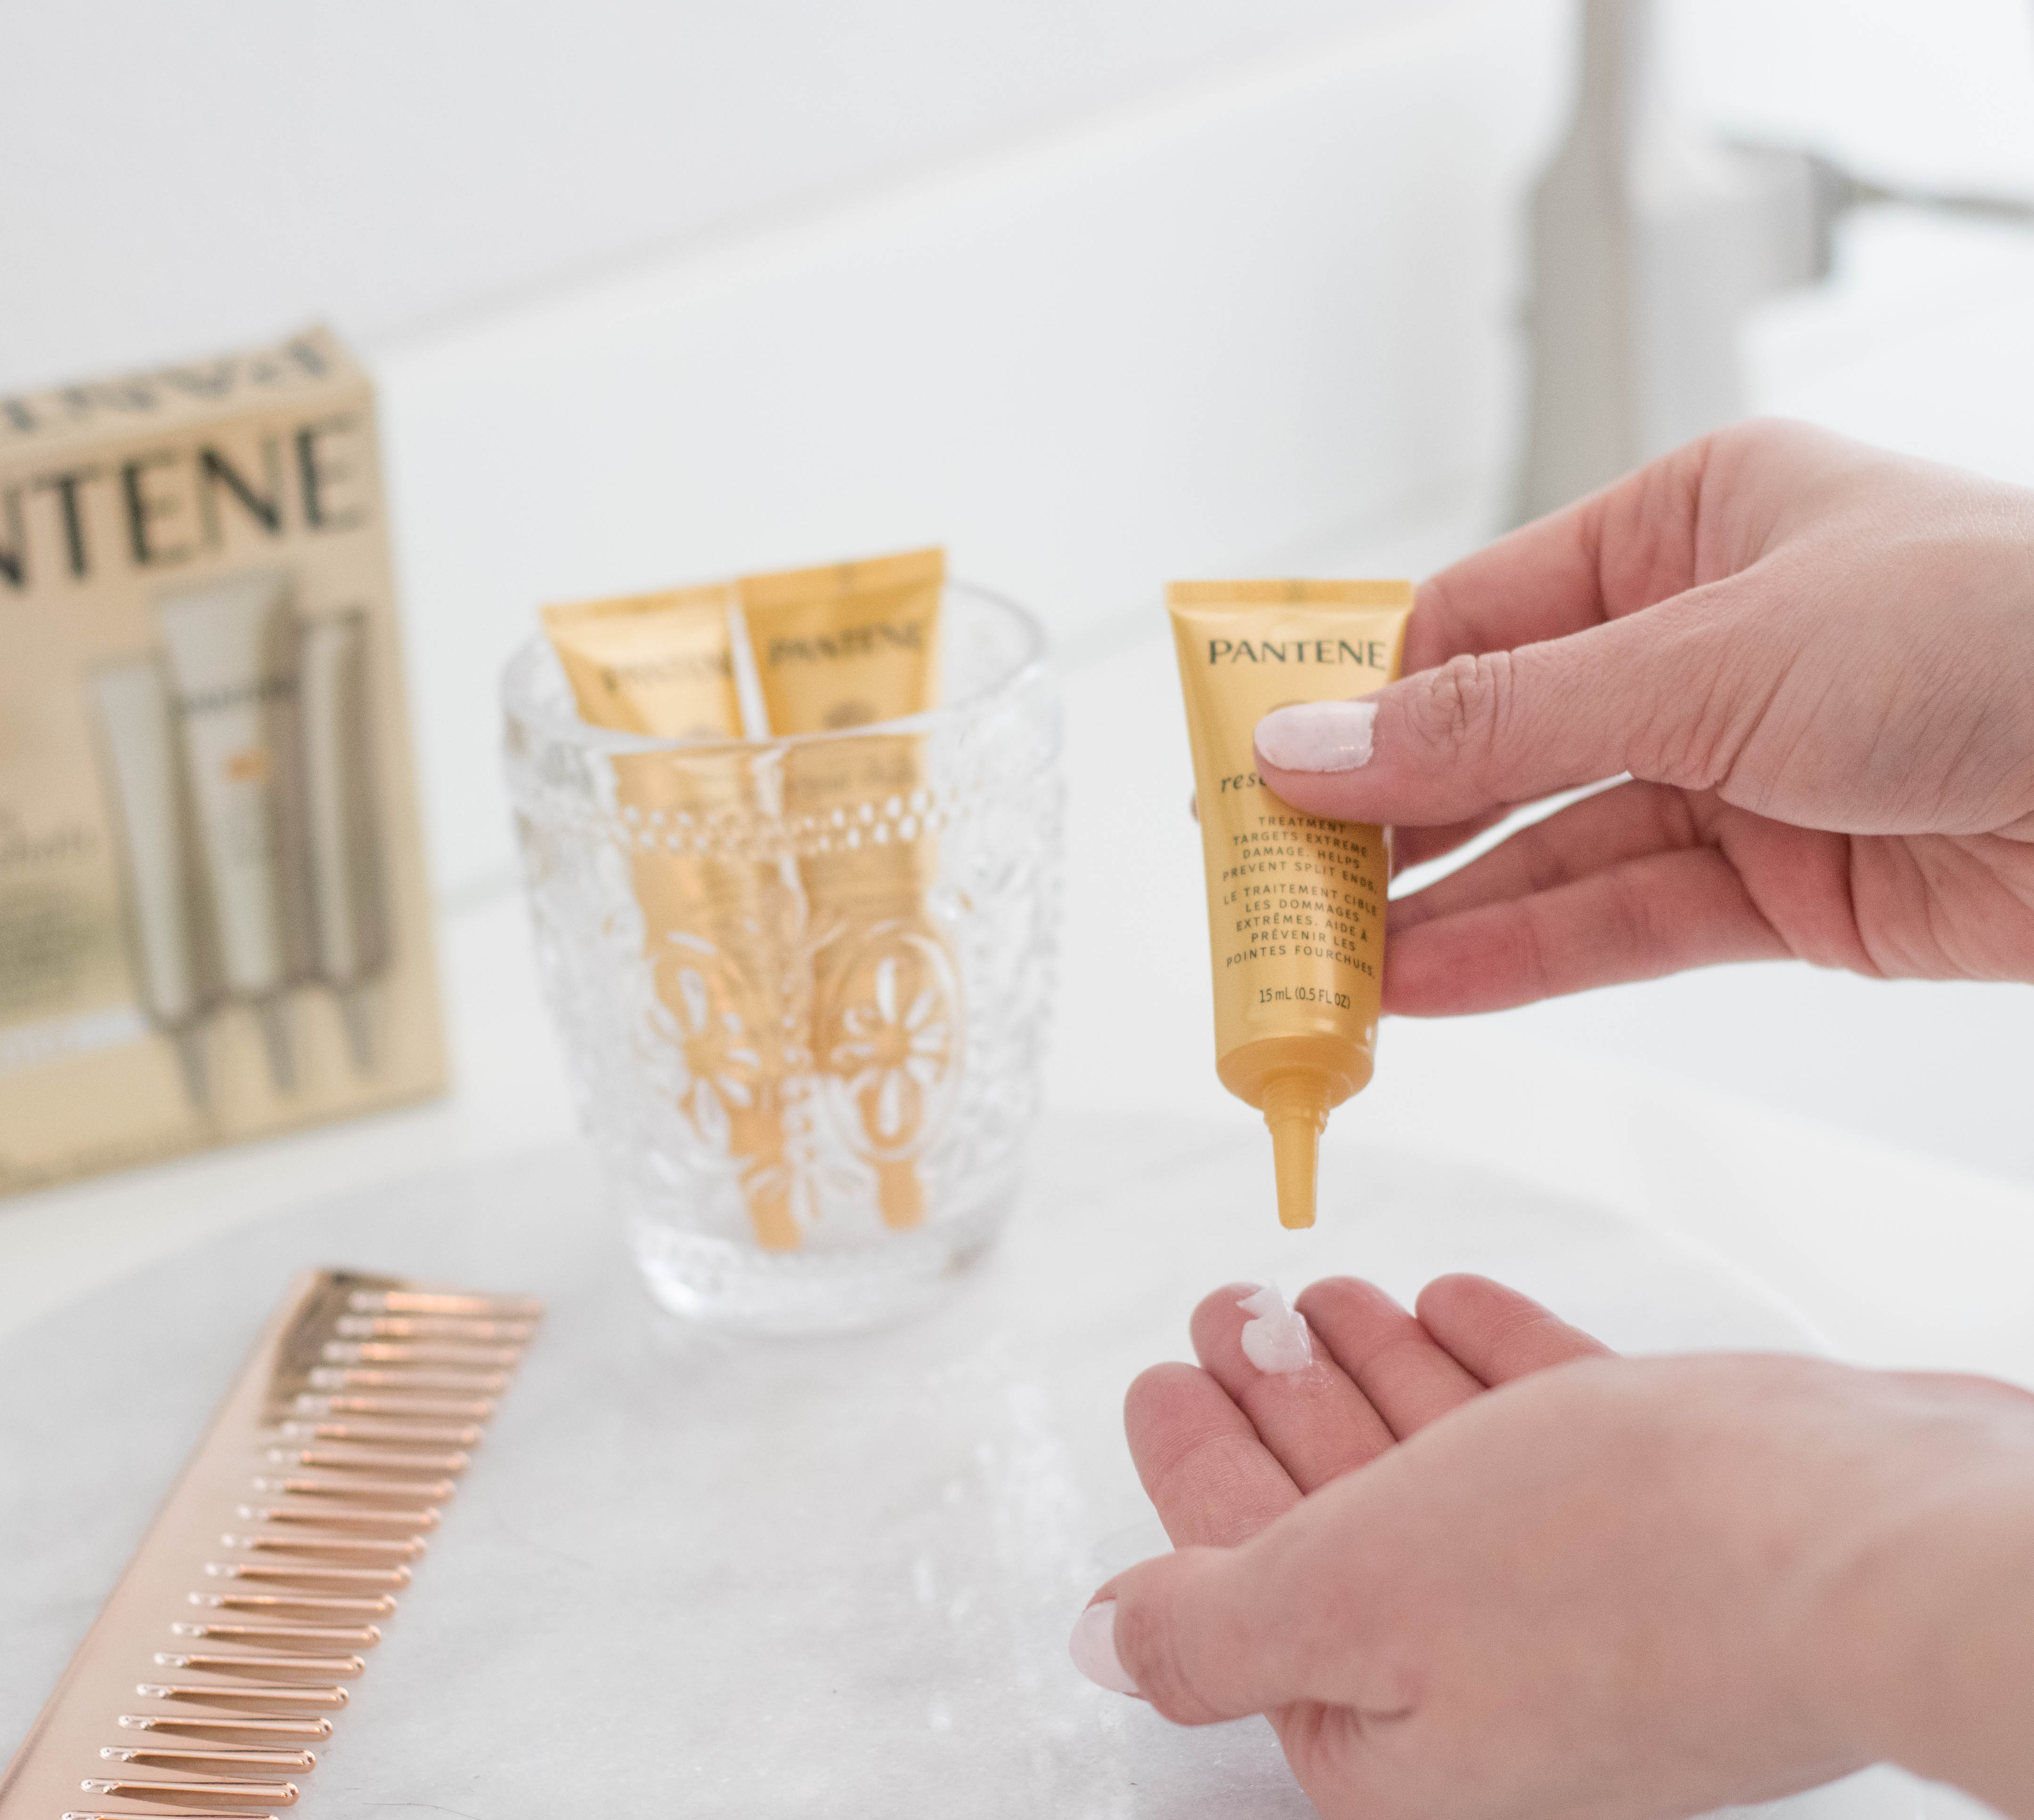 pantene pro-v intensive rescue shots review #pantene #rescueshots #haircare